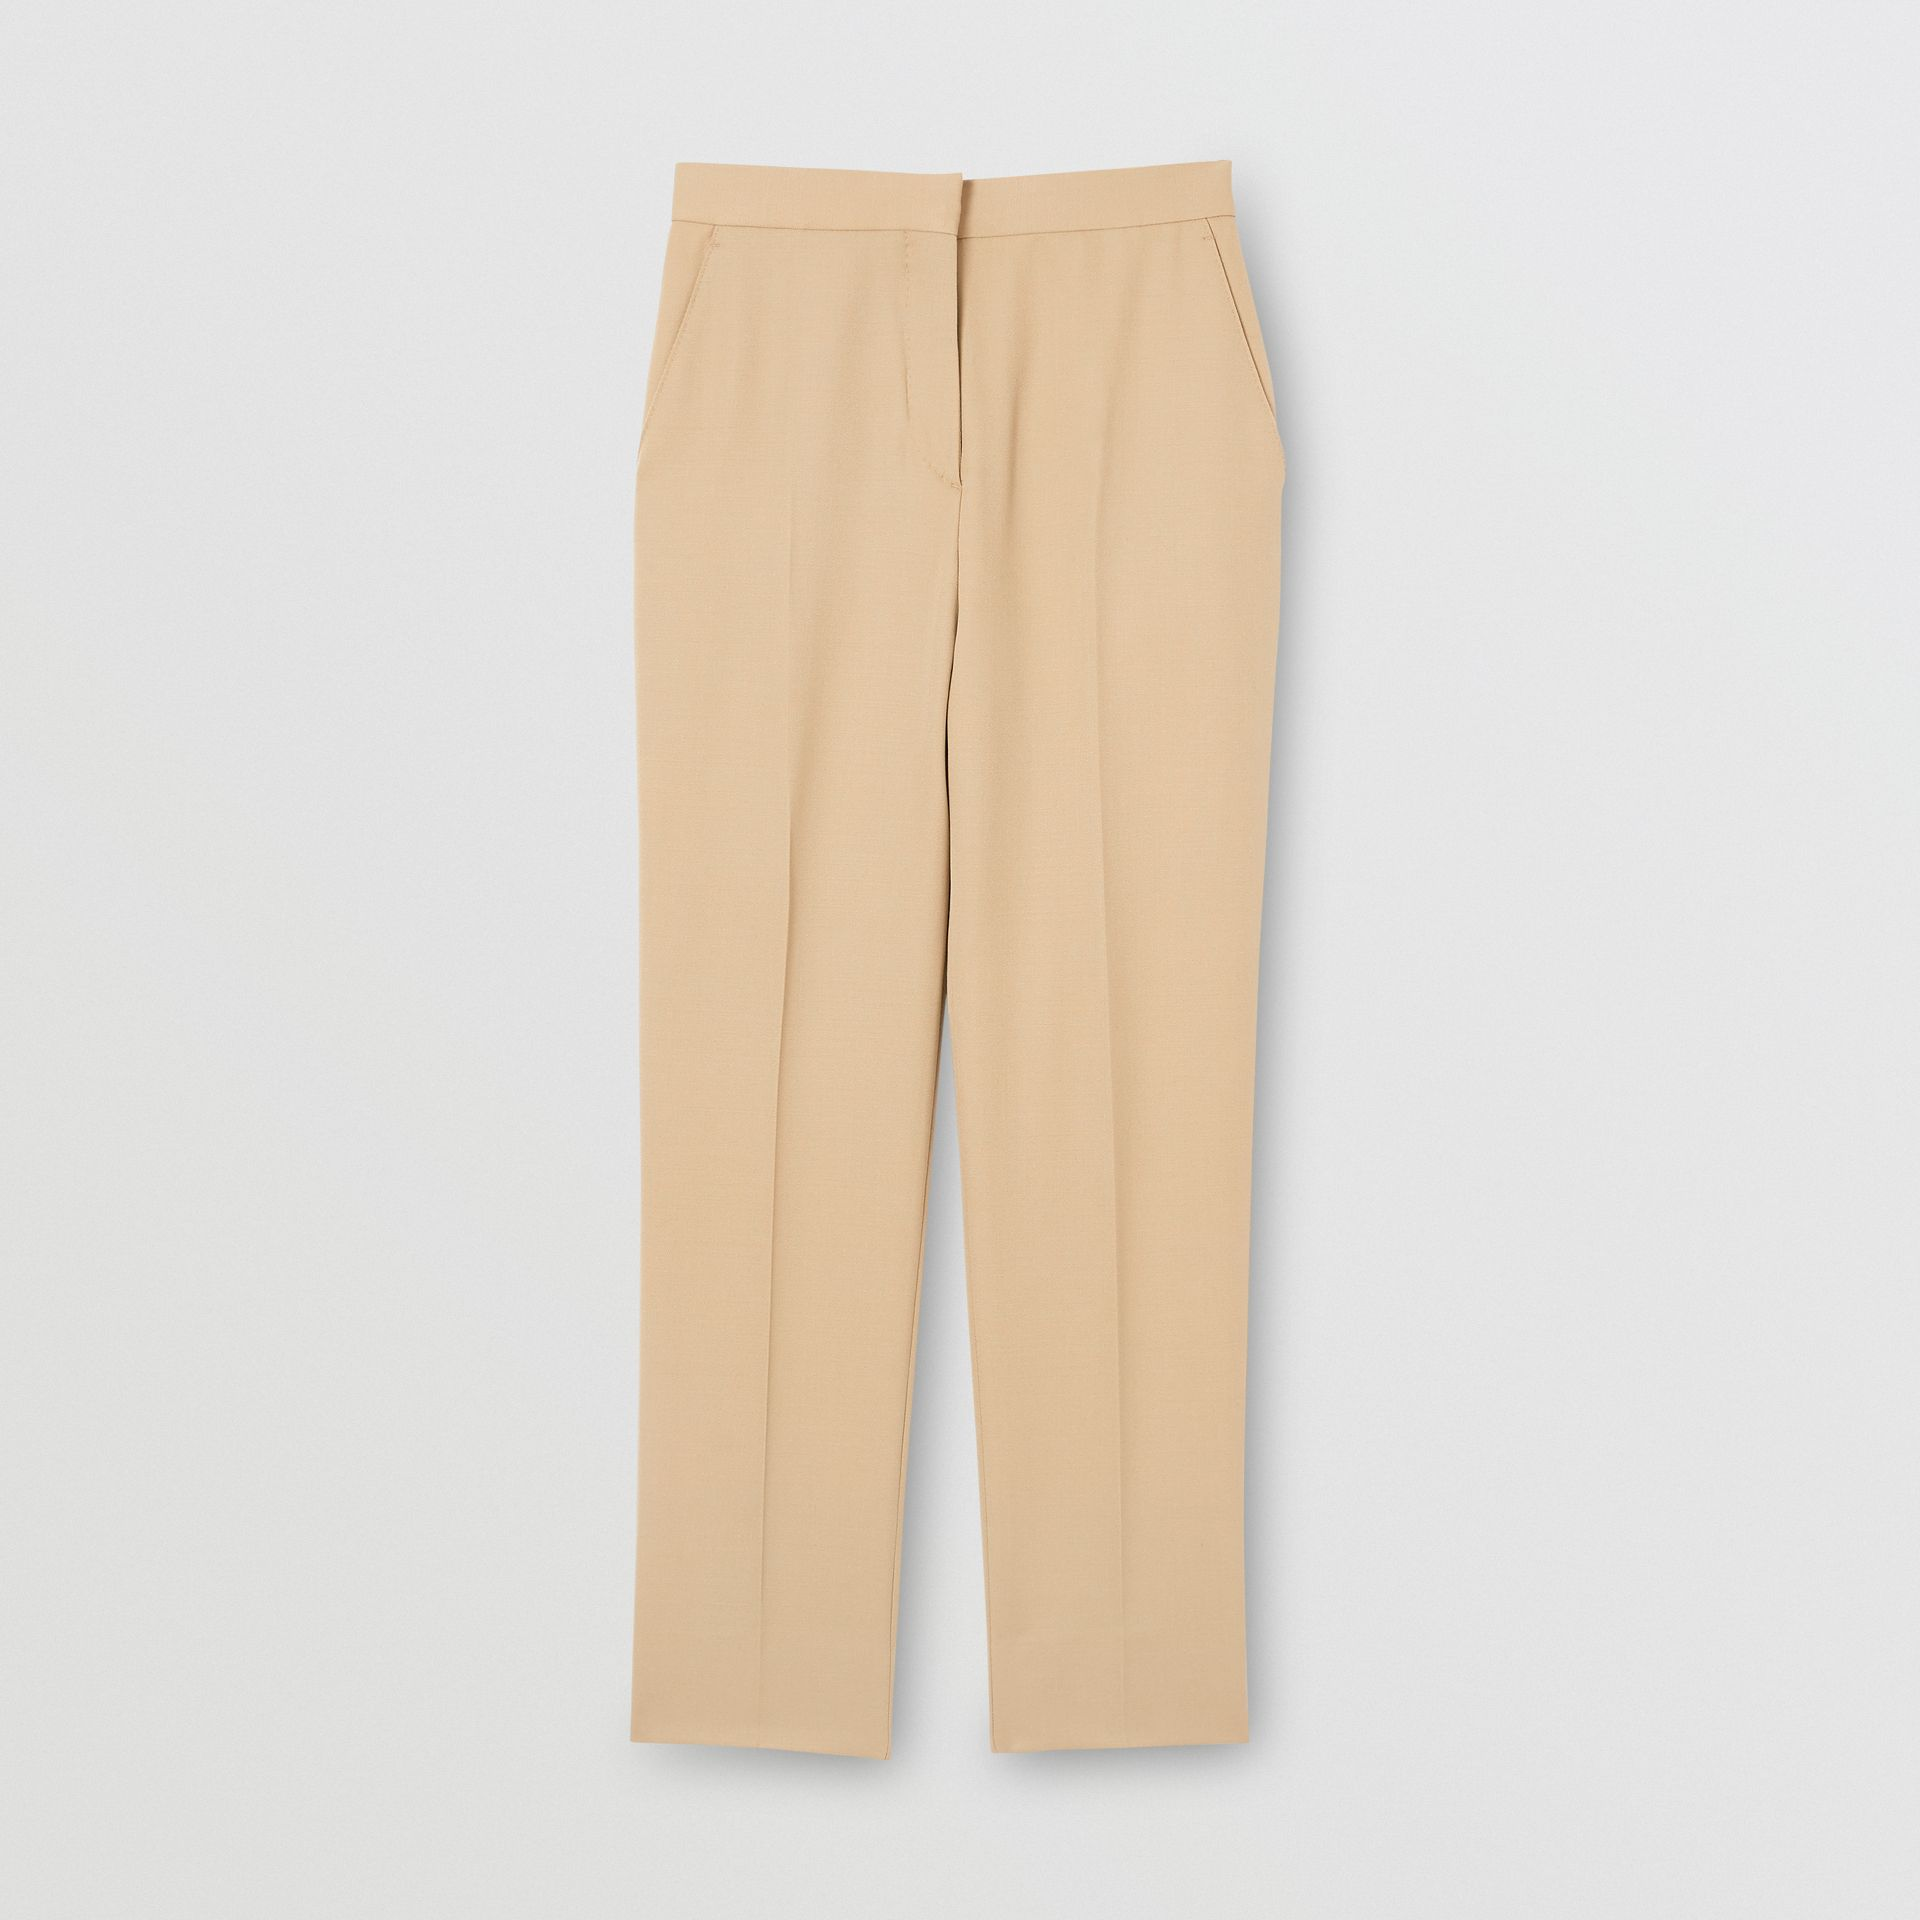 Wool Tailored Trousers in Honey - Women | Burberry Hong Kong S.A.R - gallery image 3